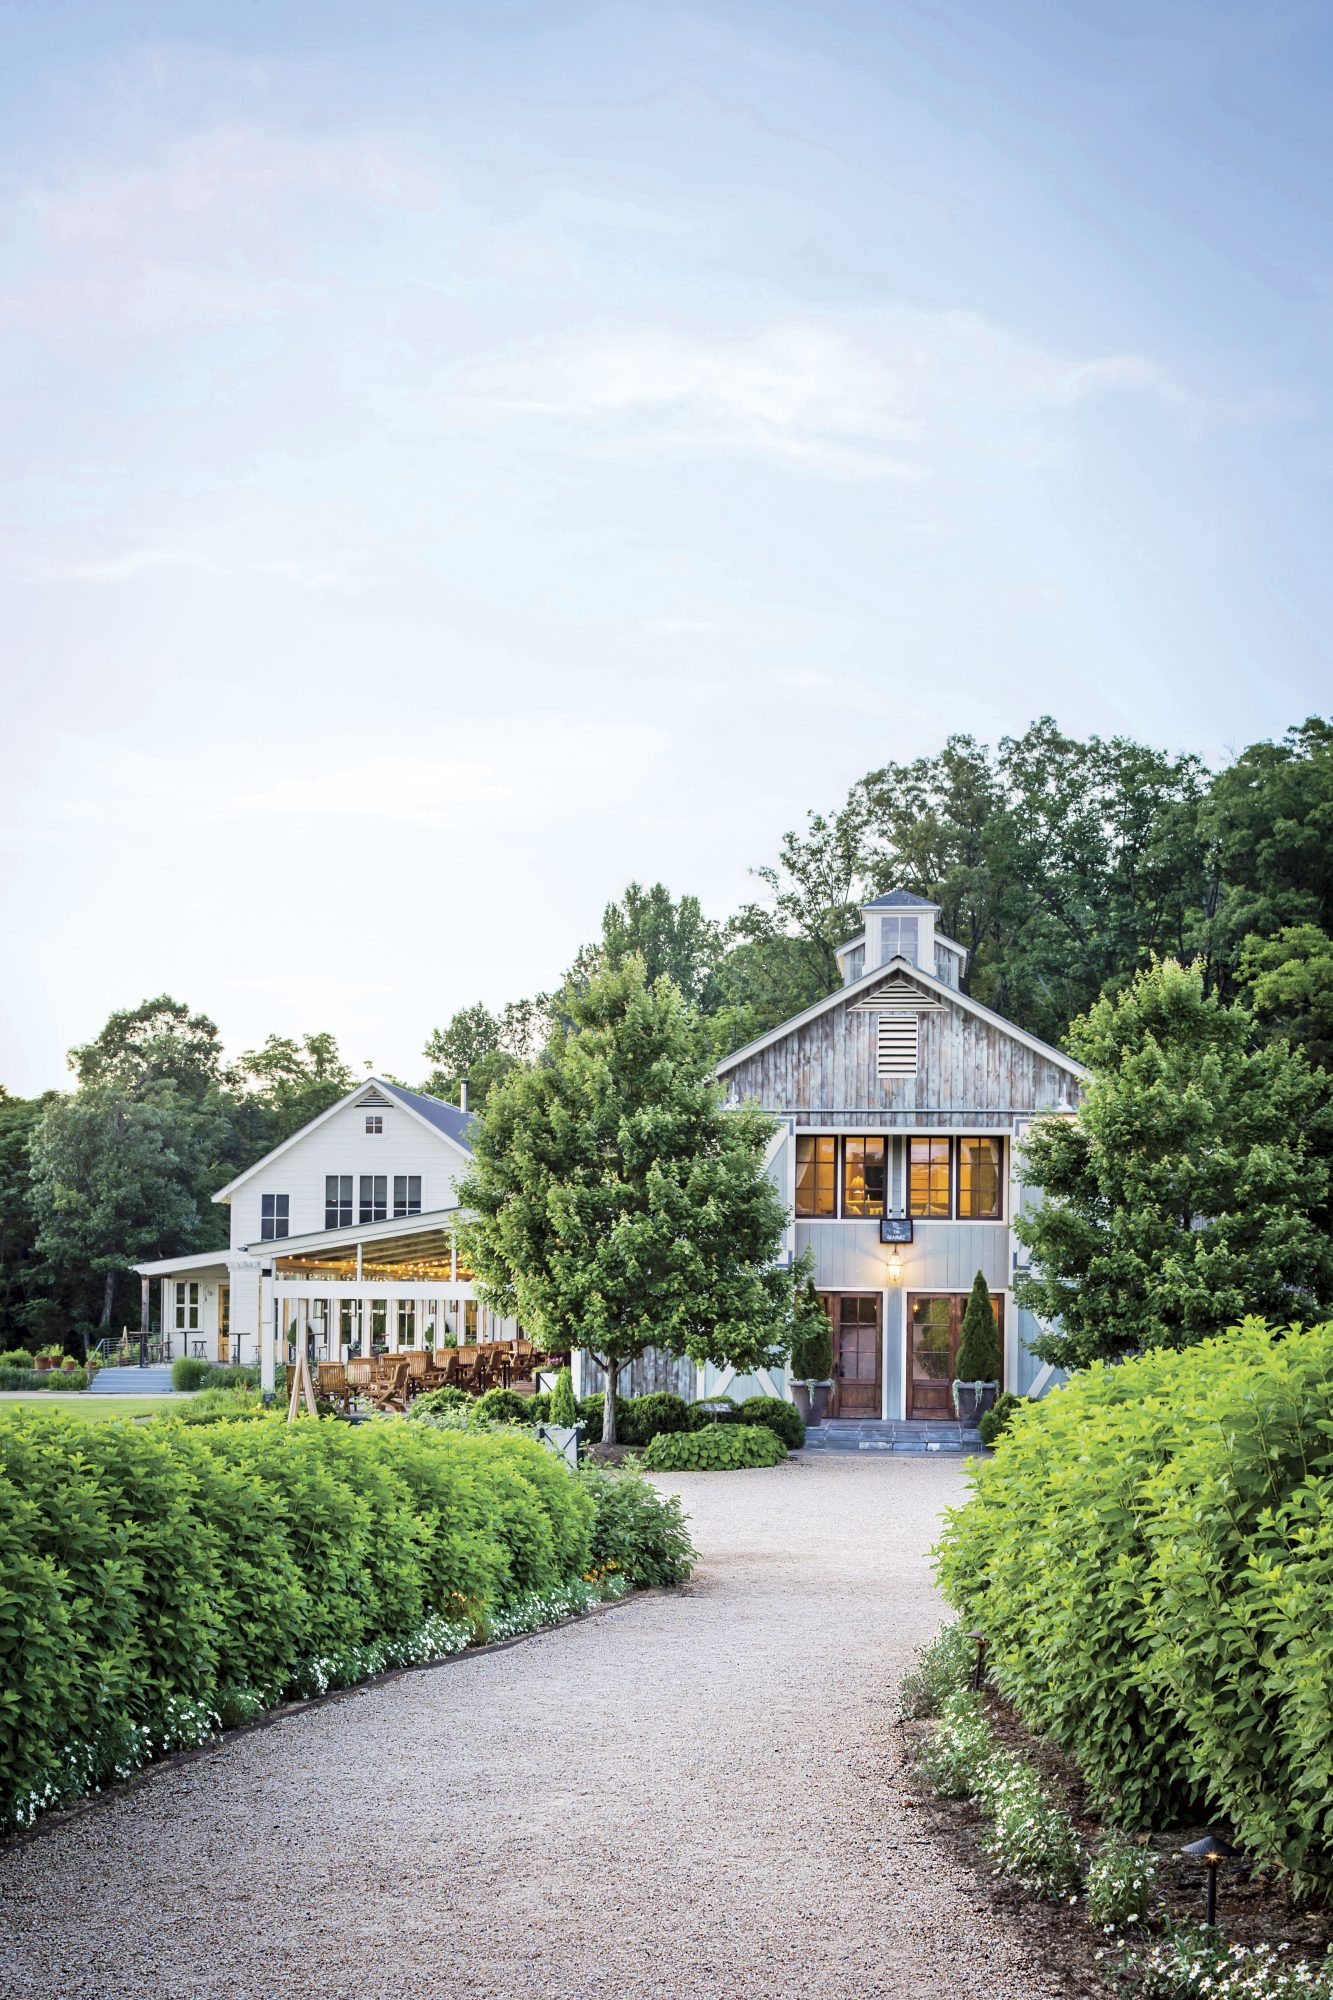 9. Virginia Wine Trails